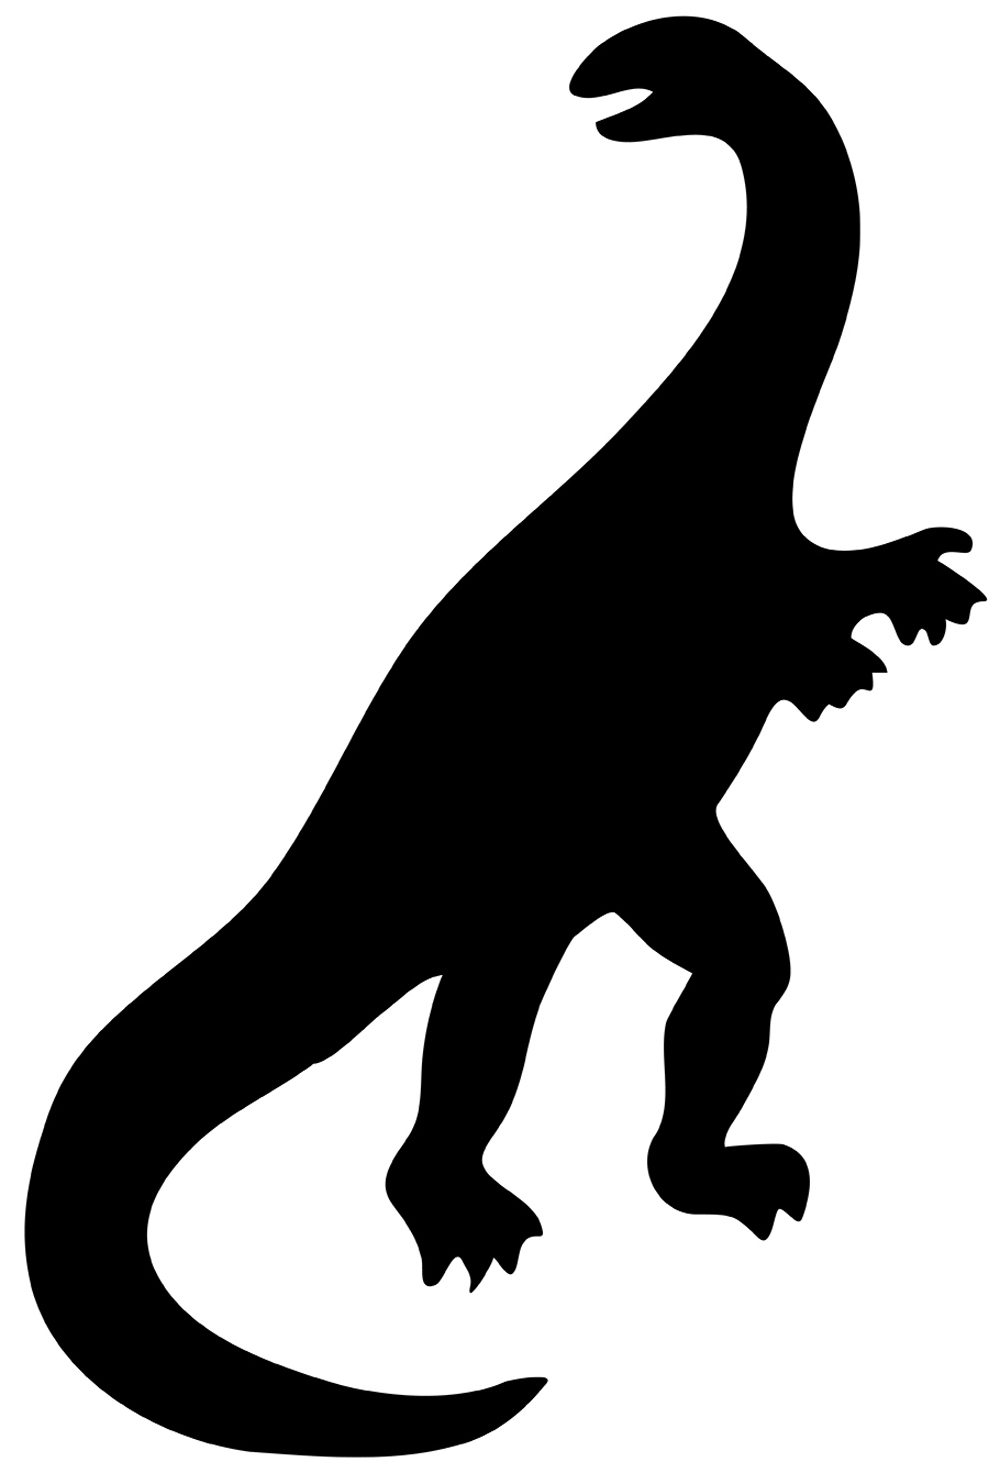 dinosaur outlines dinosaur outline 24 exciting dinosaur silhouettes free dinosaur outlines